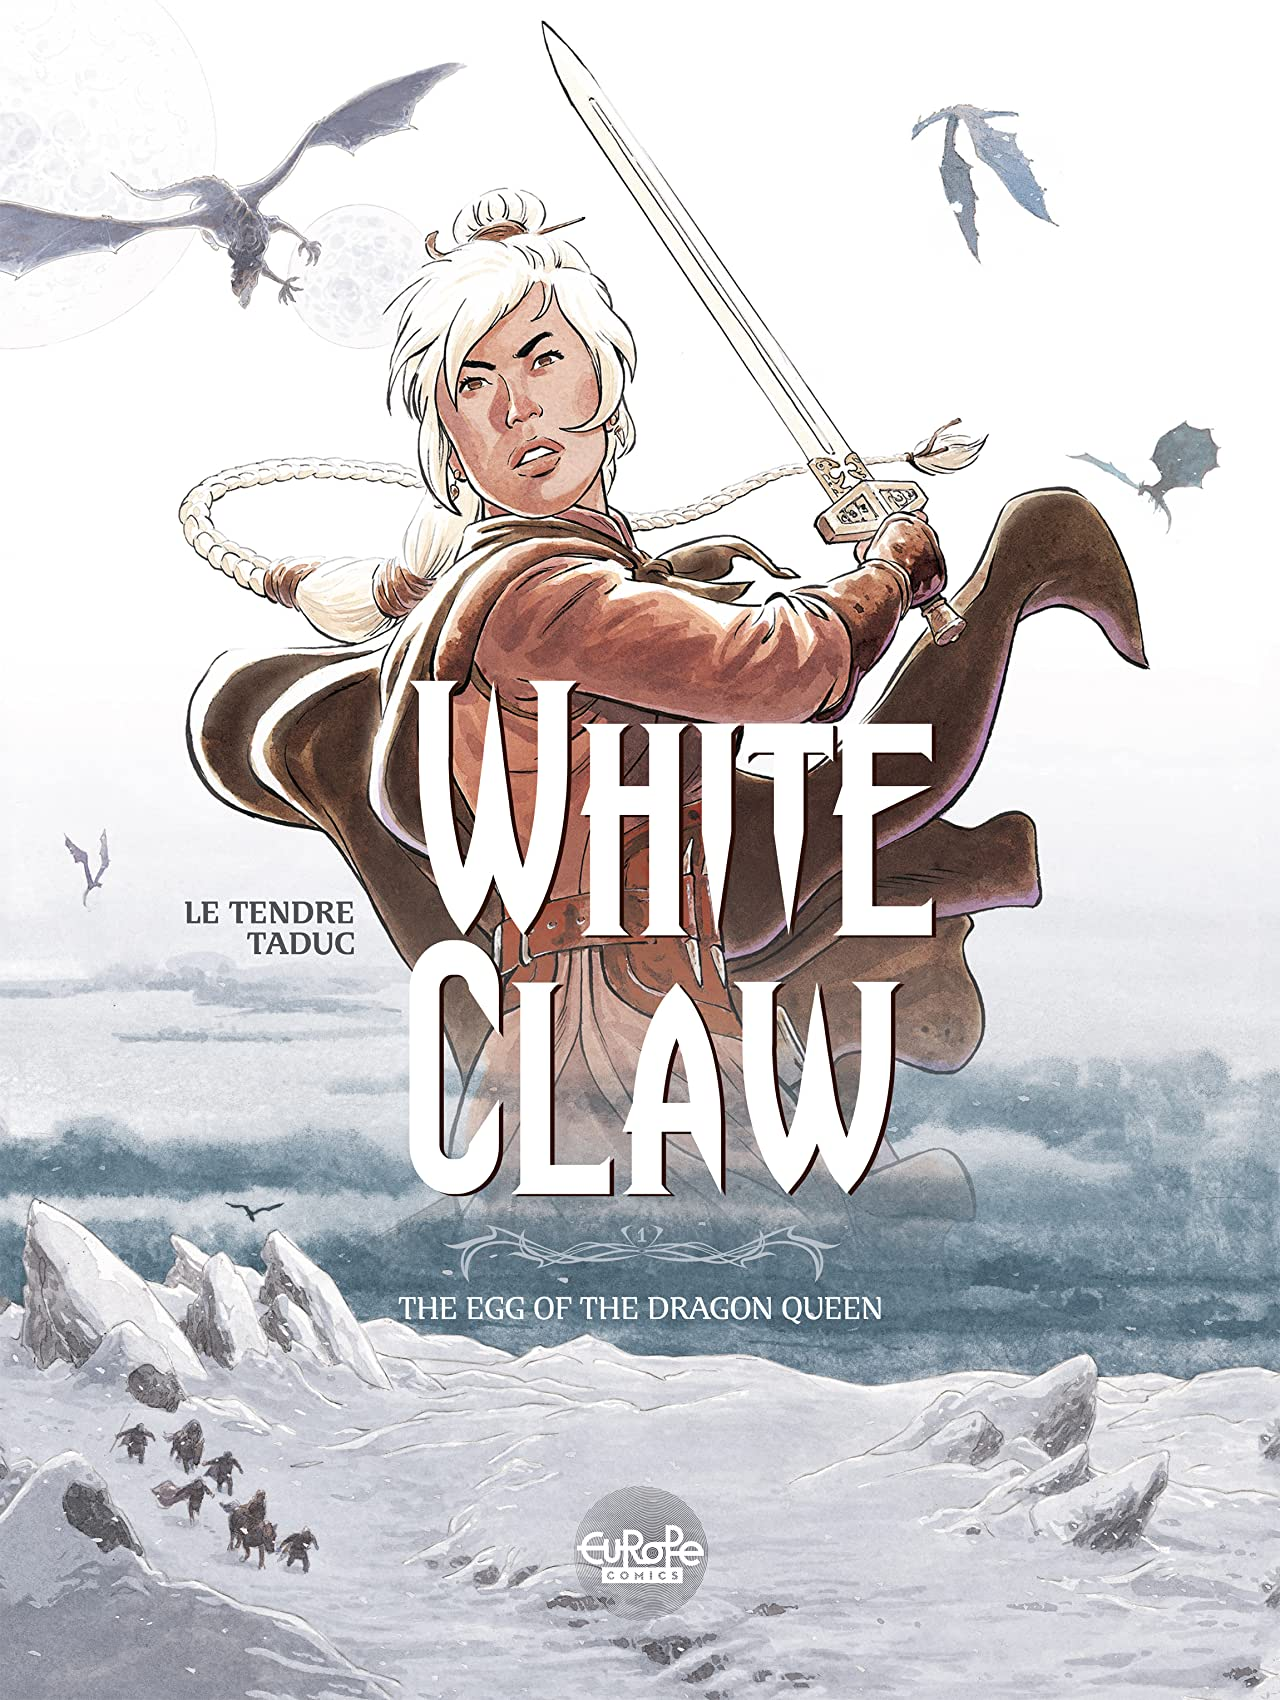 WHITE CLAW Vol. 1: THE EGG OF THE DRAGON QUEEN